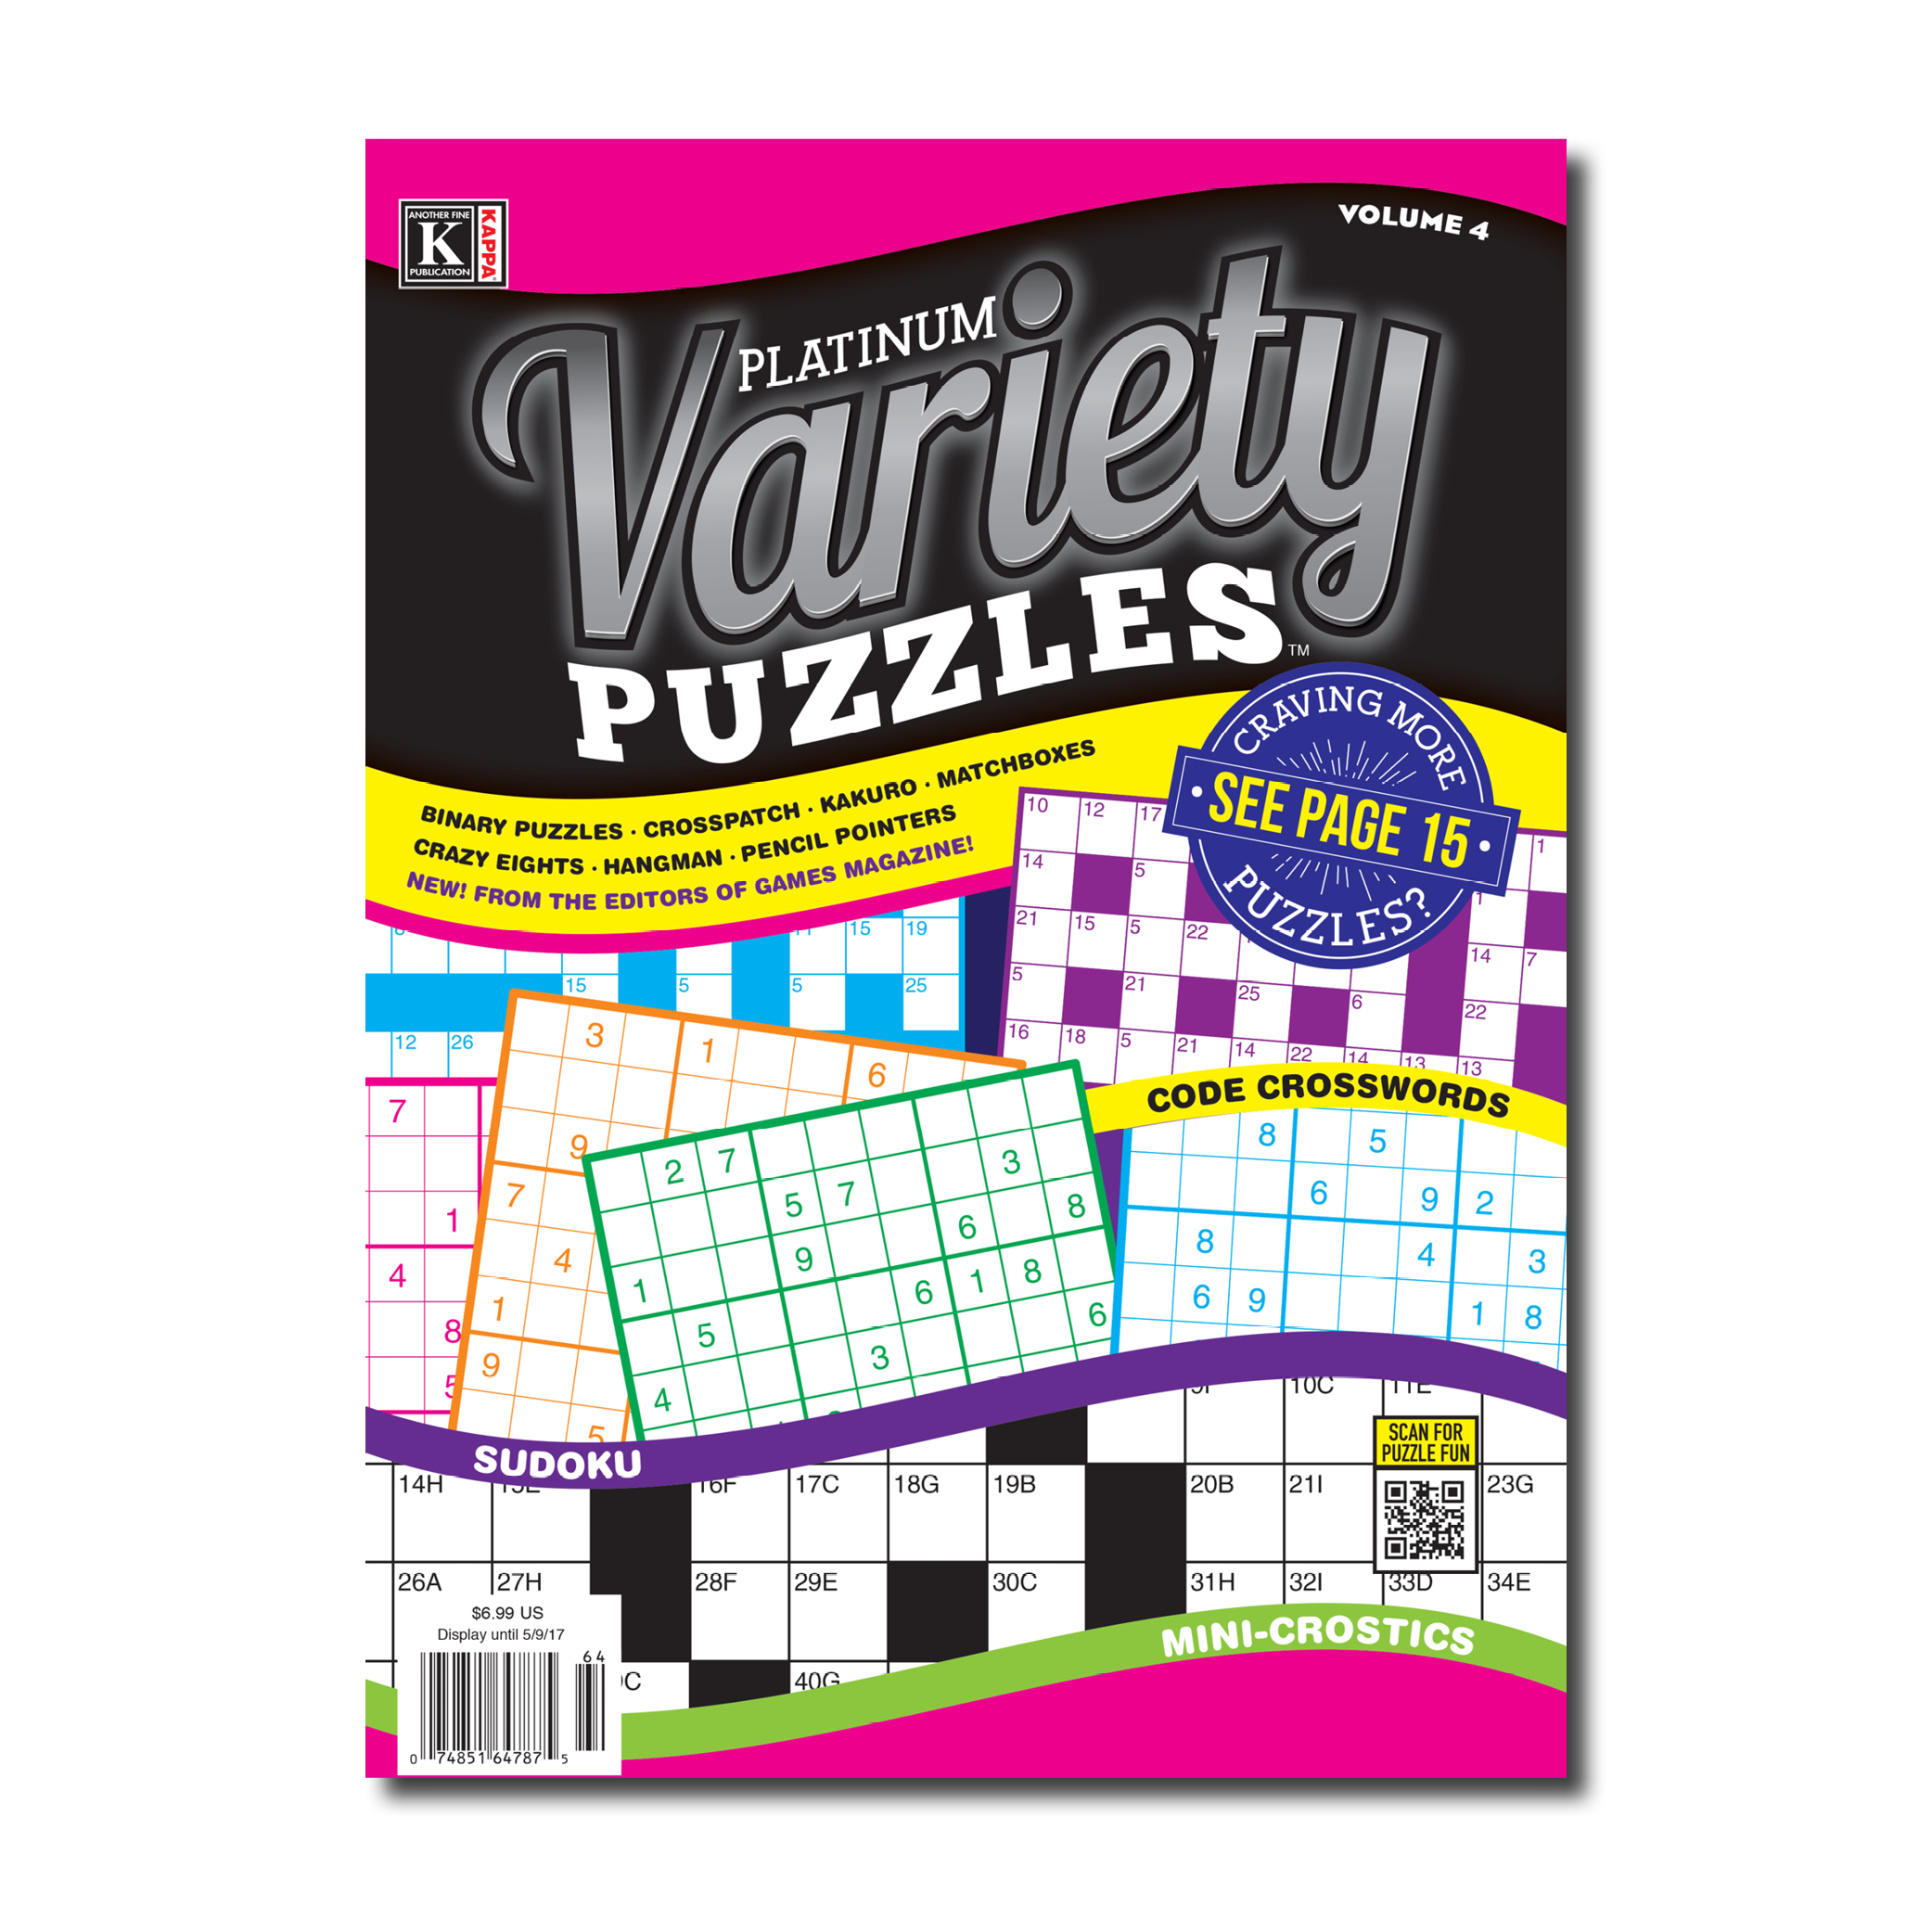 letter after kappa crossword print at home platinum variety puzzles kappa puzzles 22761 | PLVcover